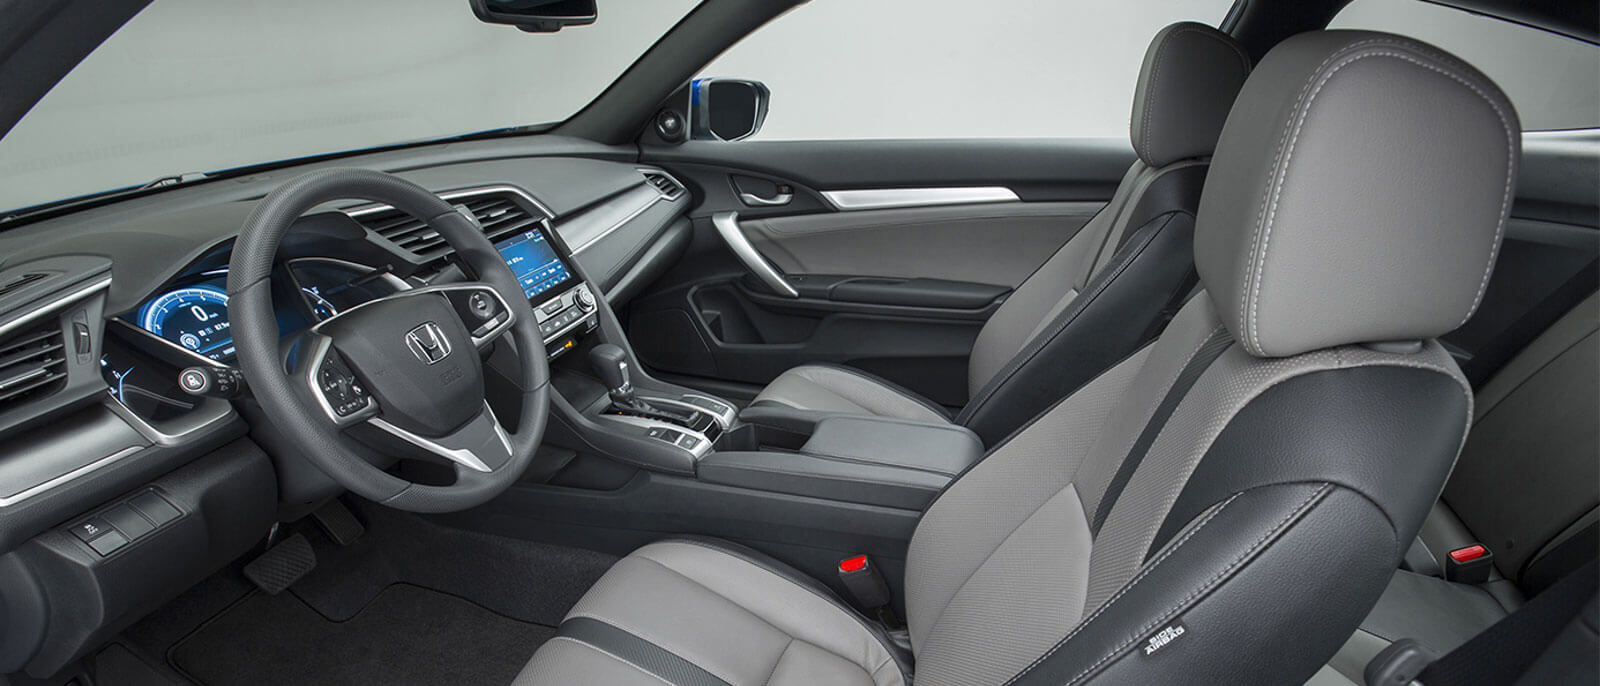 2016 Honda Civic Coupe interior